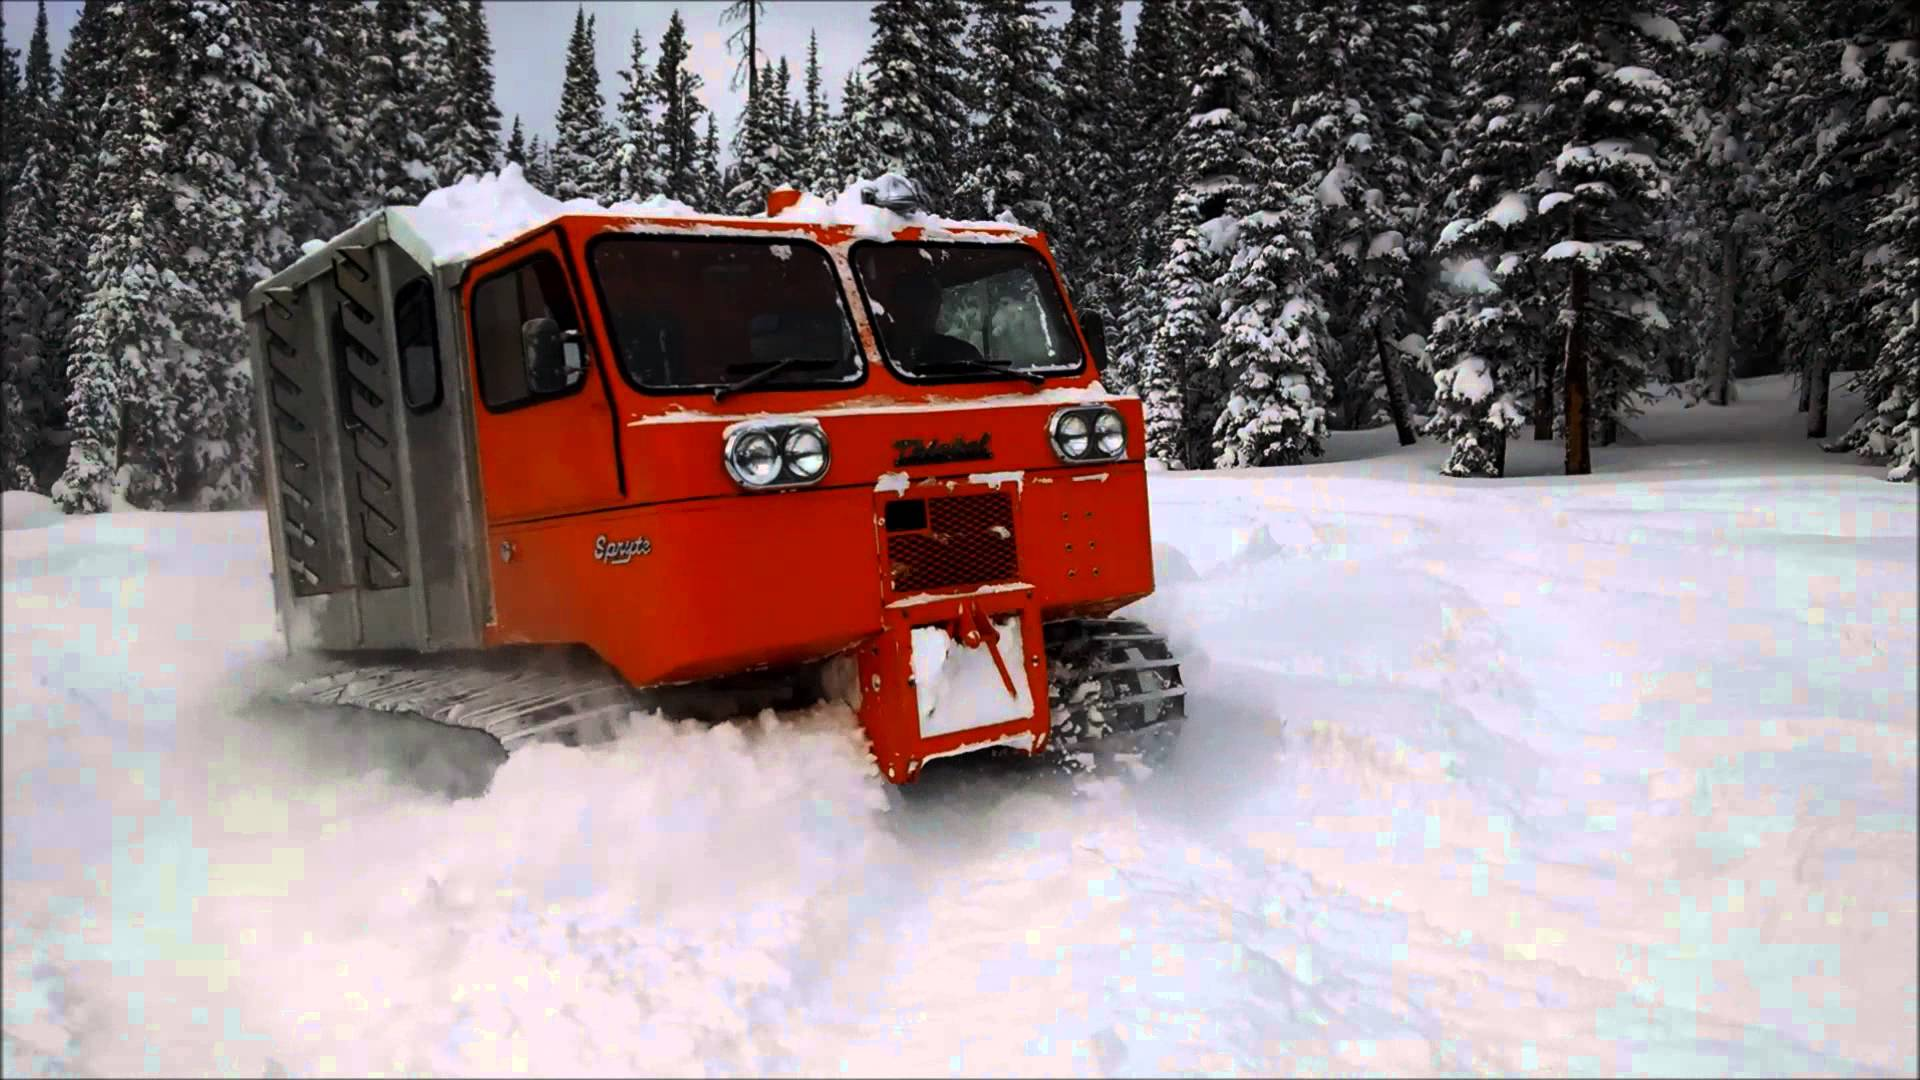 Winter Was A Breeze With These Classic Snow-Fighters   BestRide